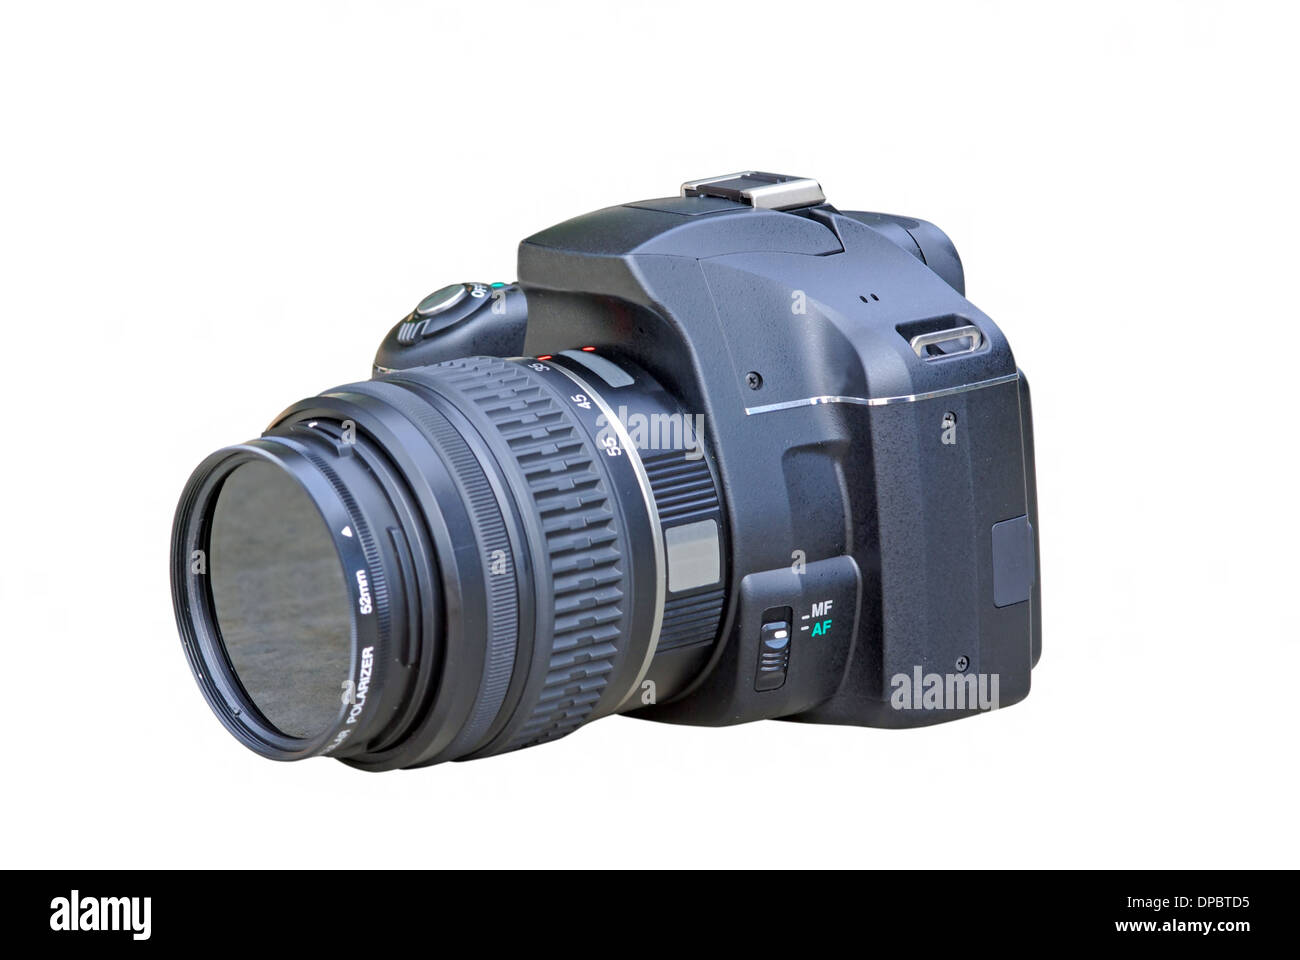 Black digital SLR camera on a white background - Stock Image